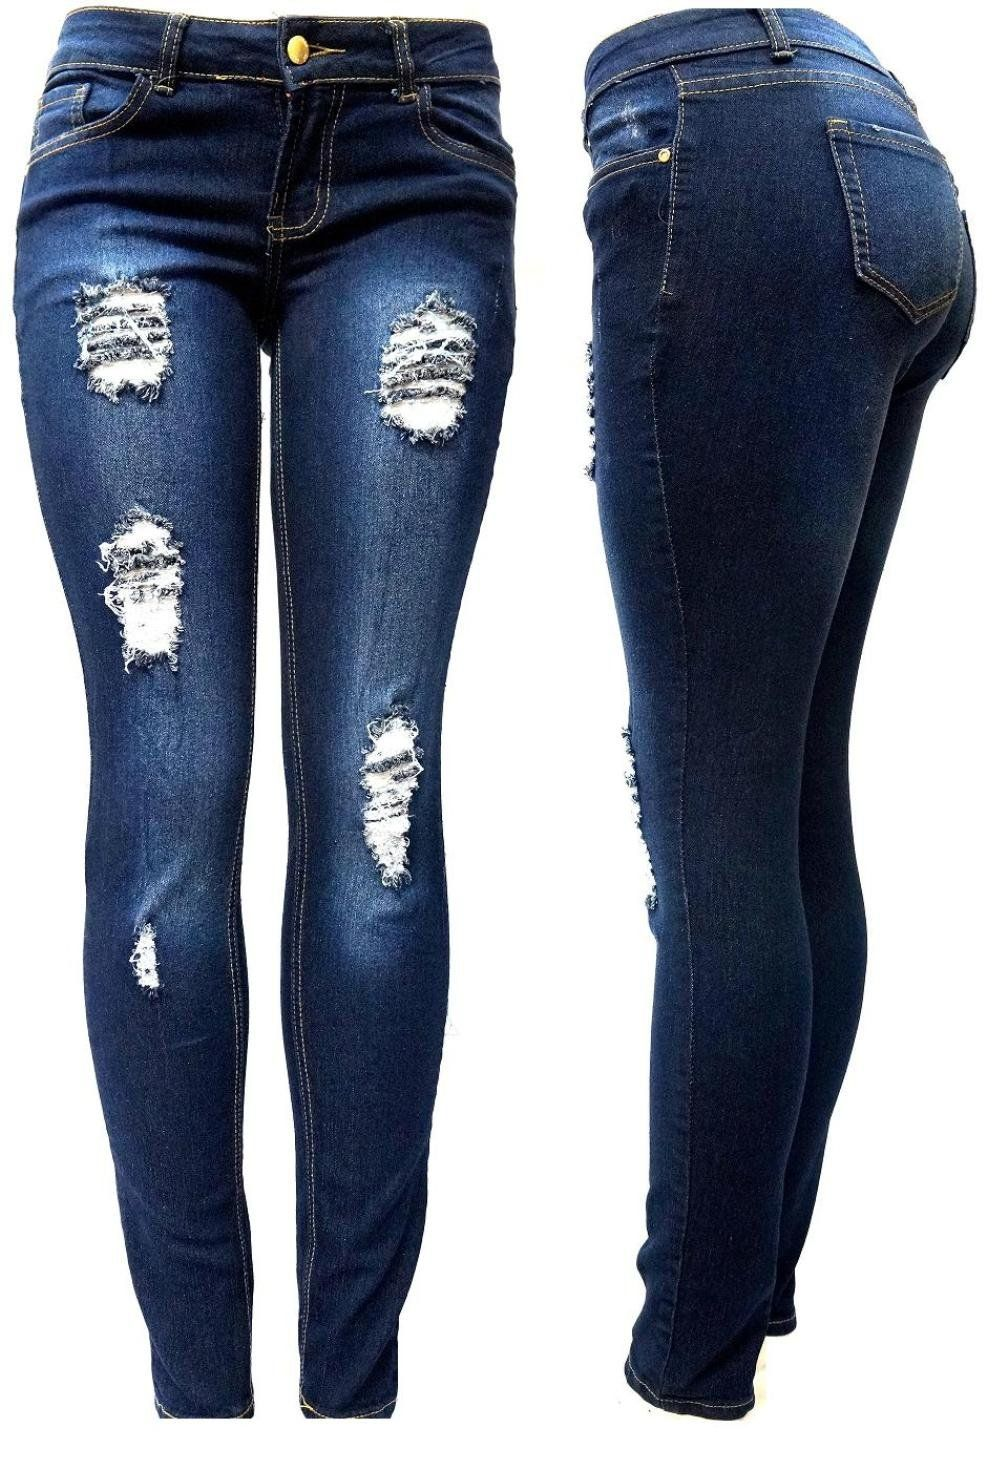 3ed59e05a57 JK41 Juniors WOMENS DARK BLUE Denim JEANS Destroy Skinny Ripped Distressed  Pants (9)